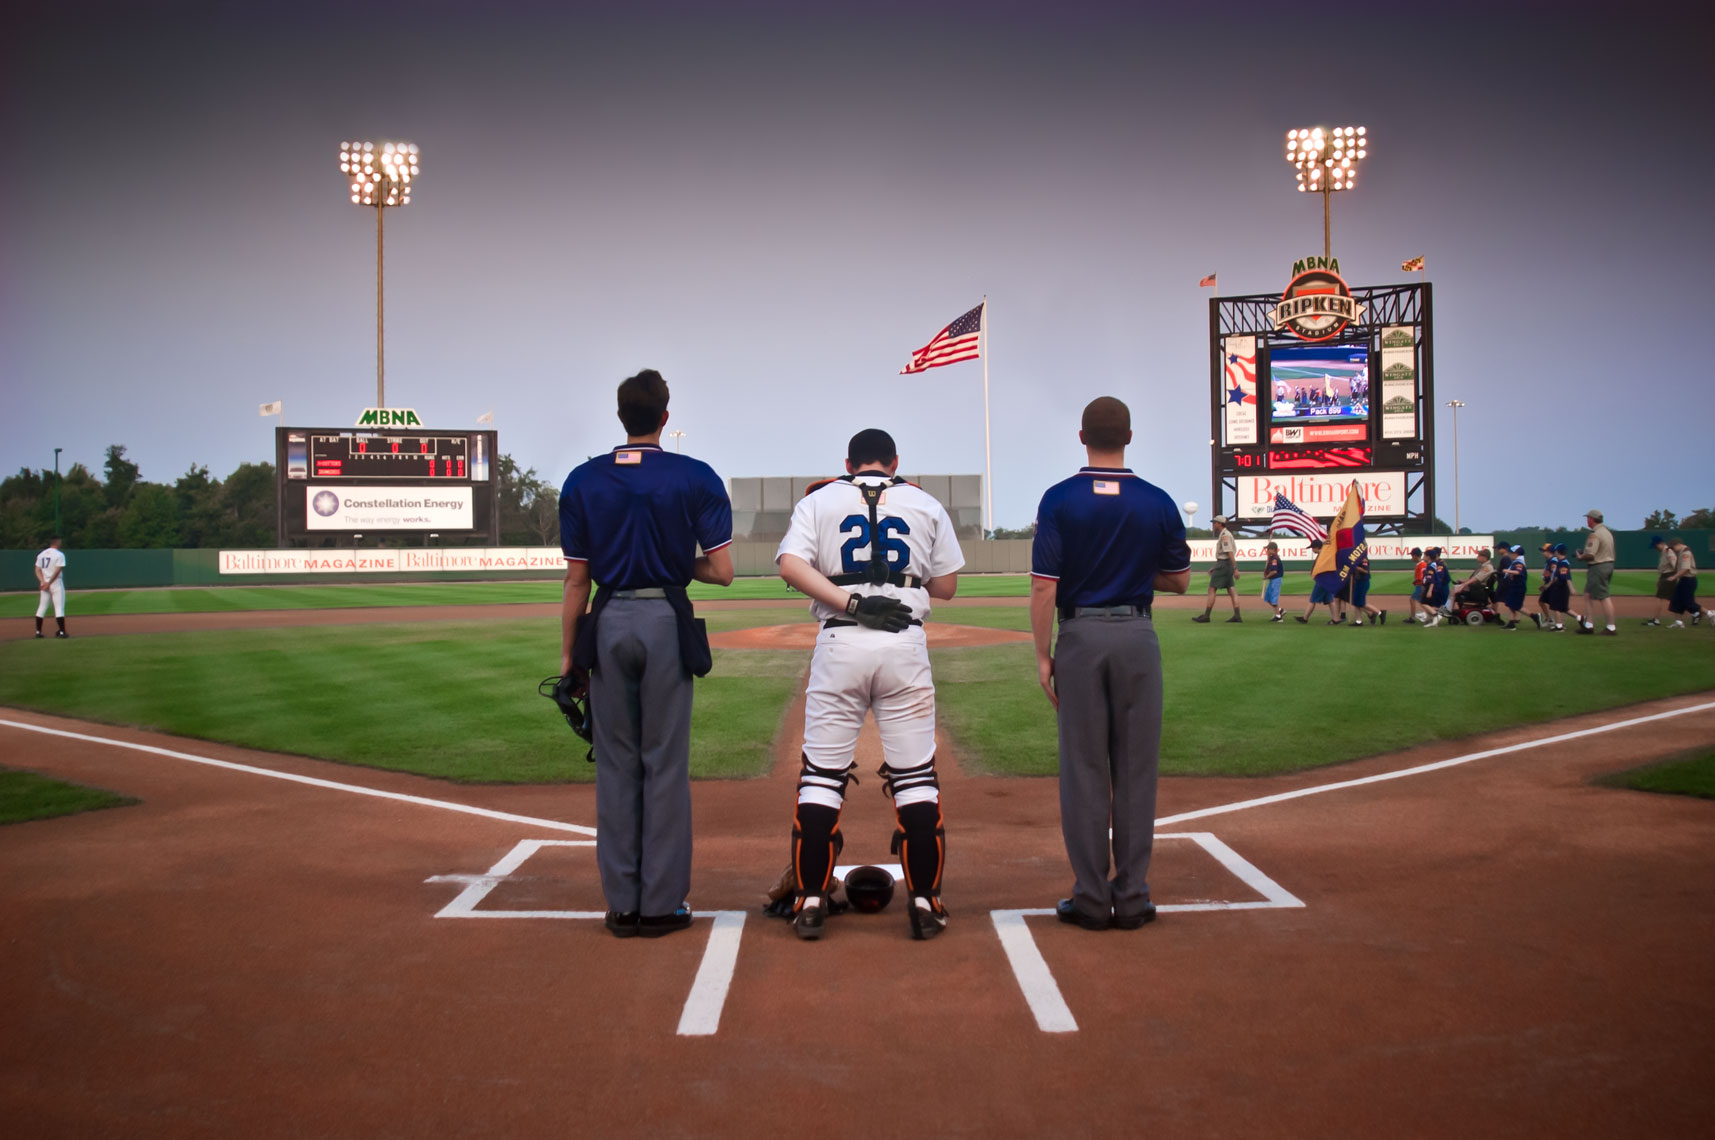 National anthem, Aberdeen Ironbirds, by sports photographer Mike Morgan.